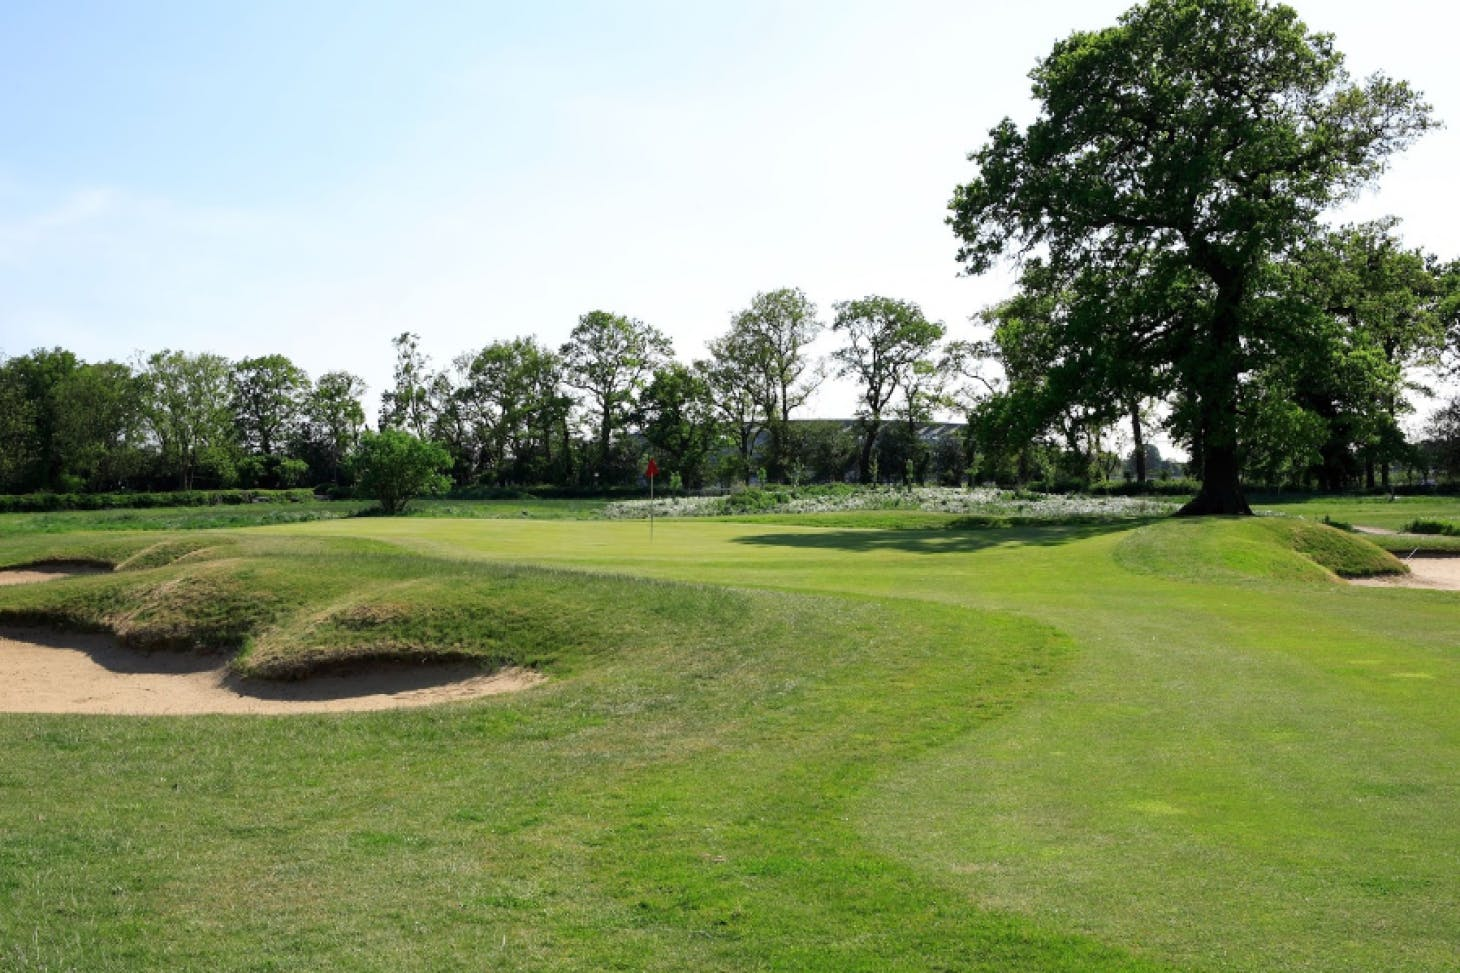 Royal Ascot Golf Club 18 hole | Yes golf course